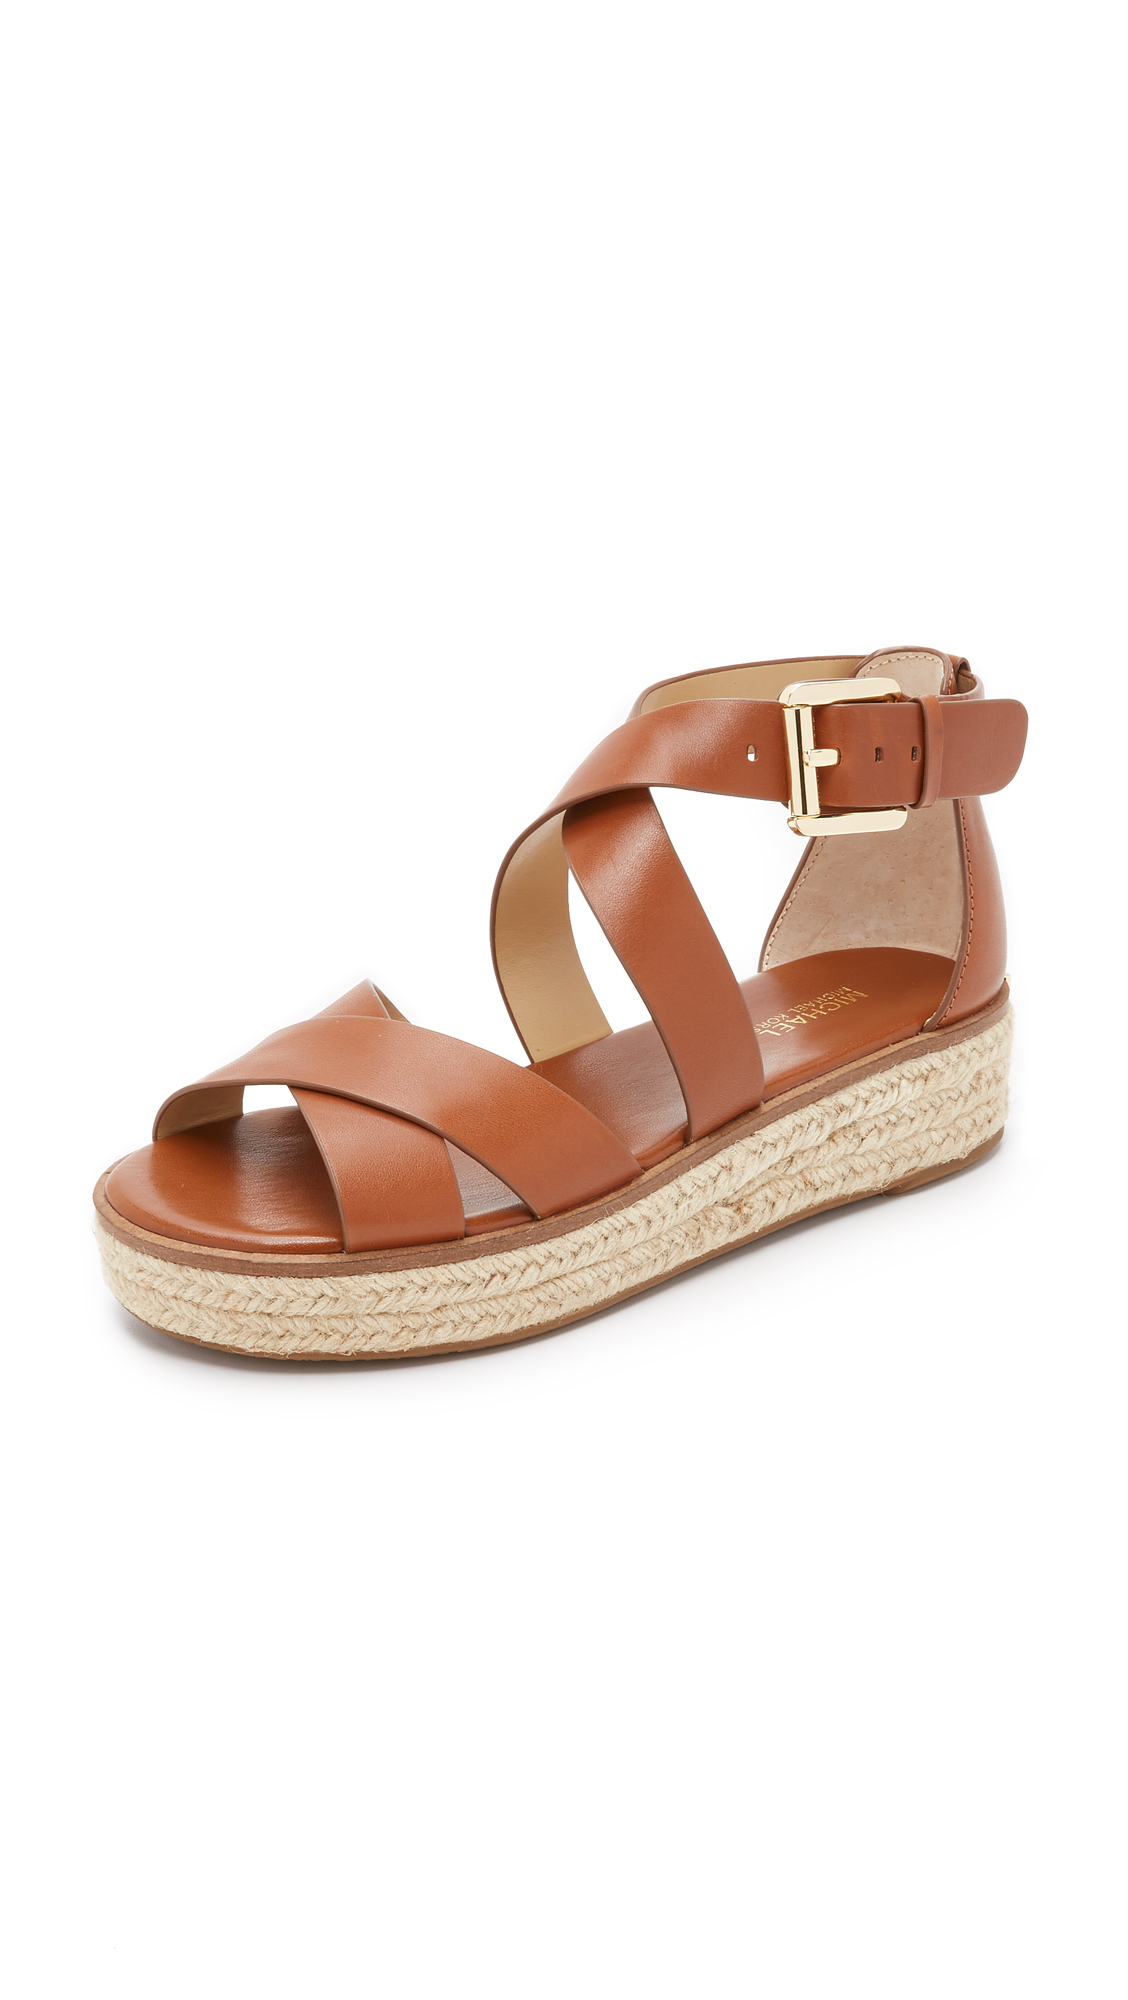 a5573f3e266a MICHAEL Michael Kors Darby Sandals in Brown - Lyst